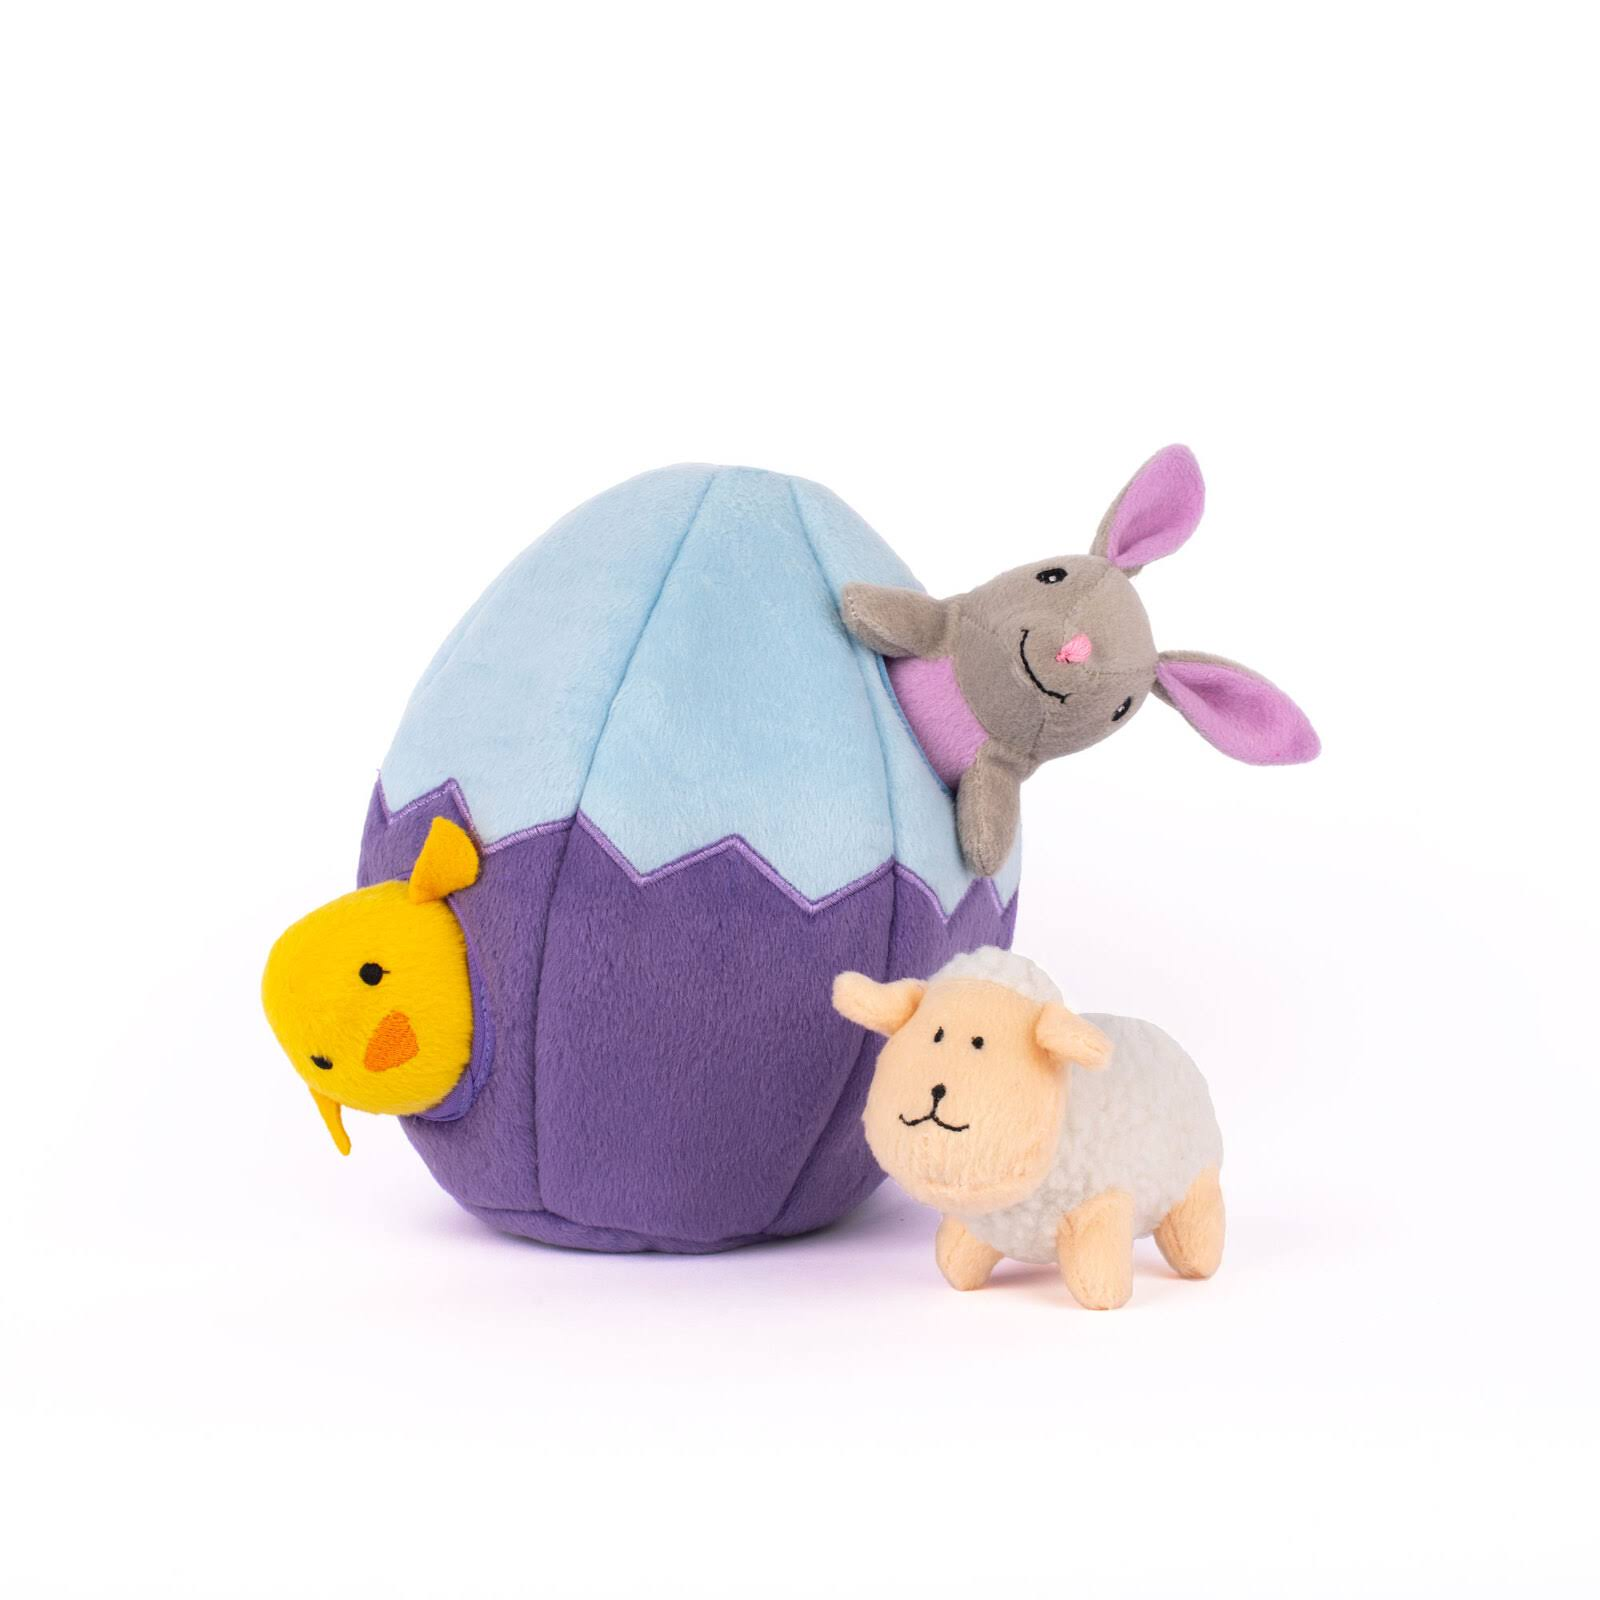 ZippyPaws Zippy Burrow Hide & Seek Easter Egg and Friends Dog Toy